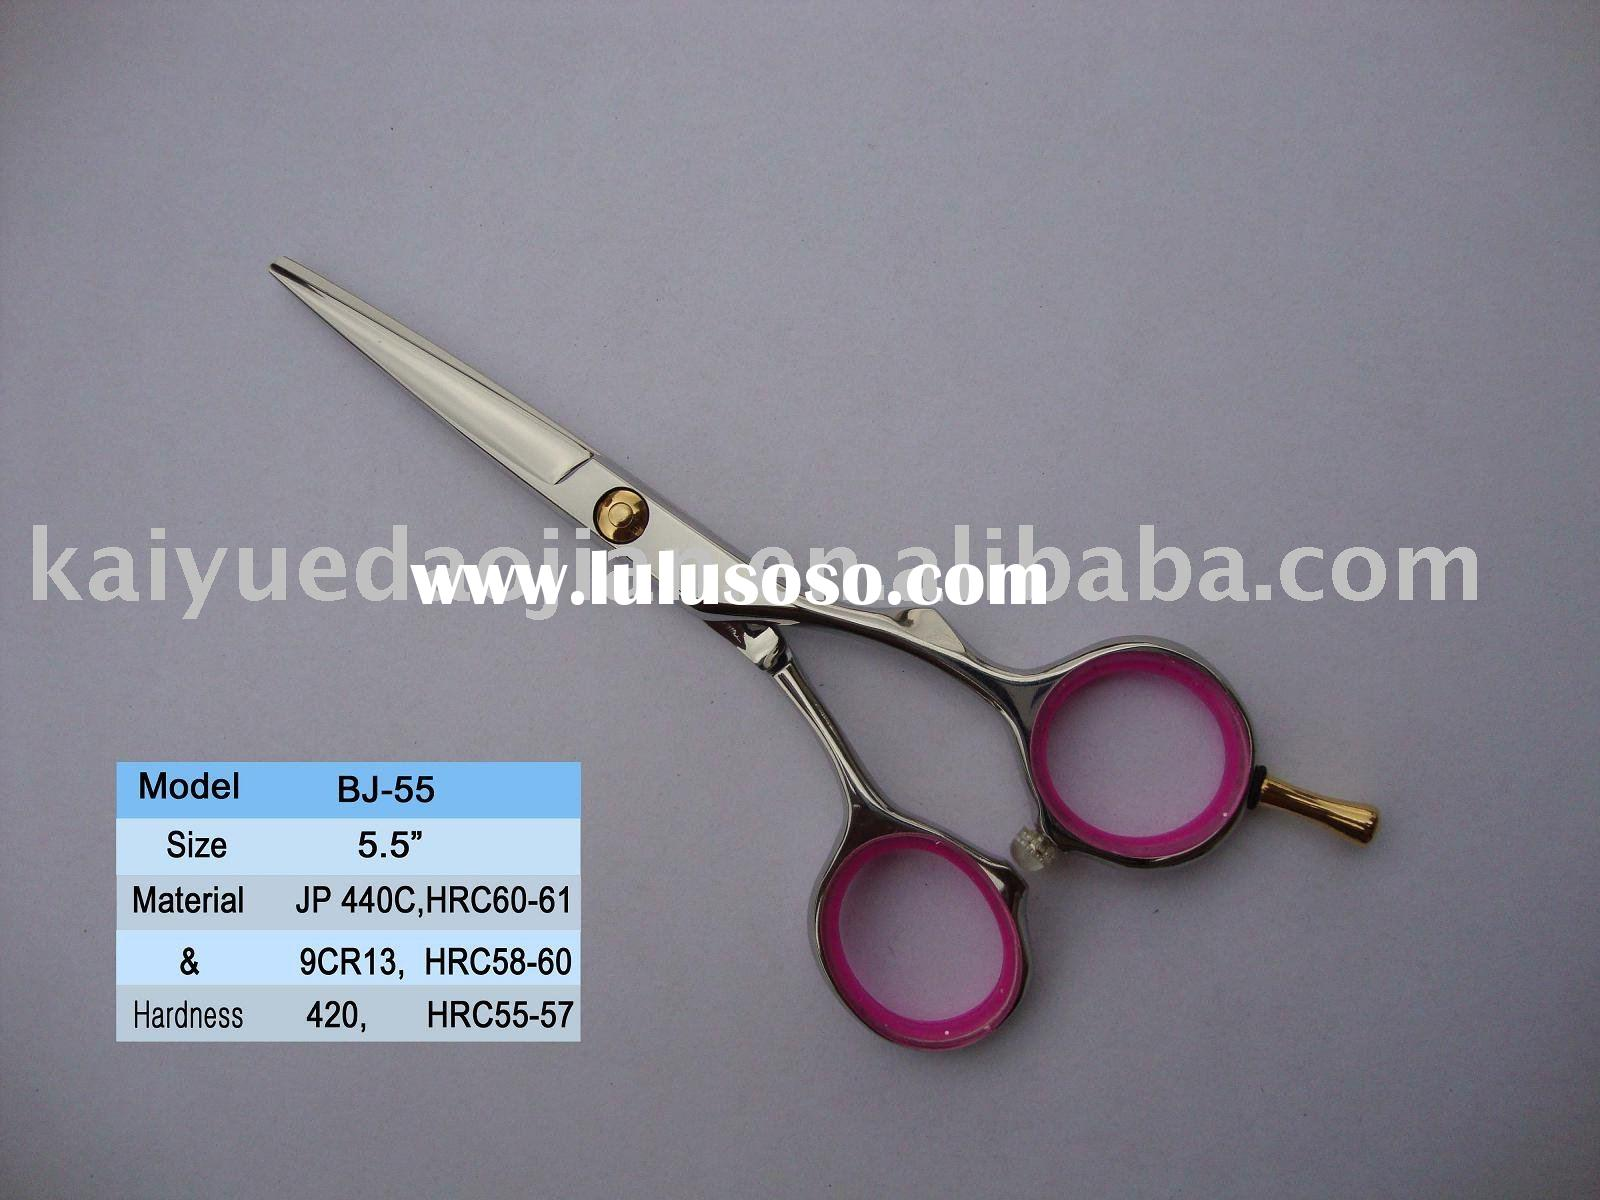 Haircutting scissors/hair steel scissors/hair tool/small scissors/hair beauty